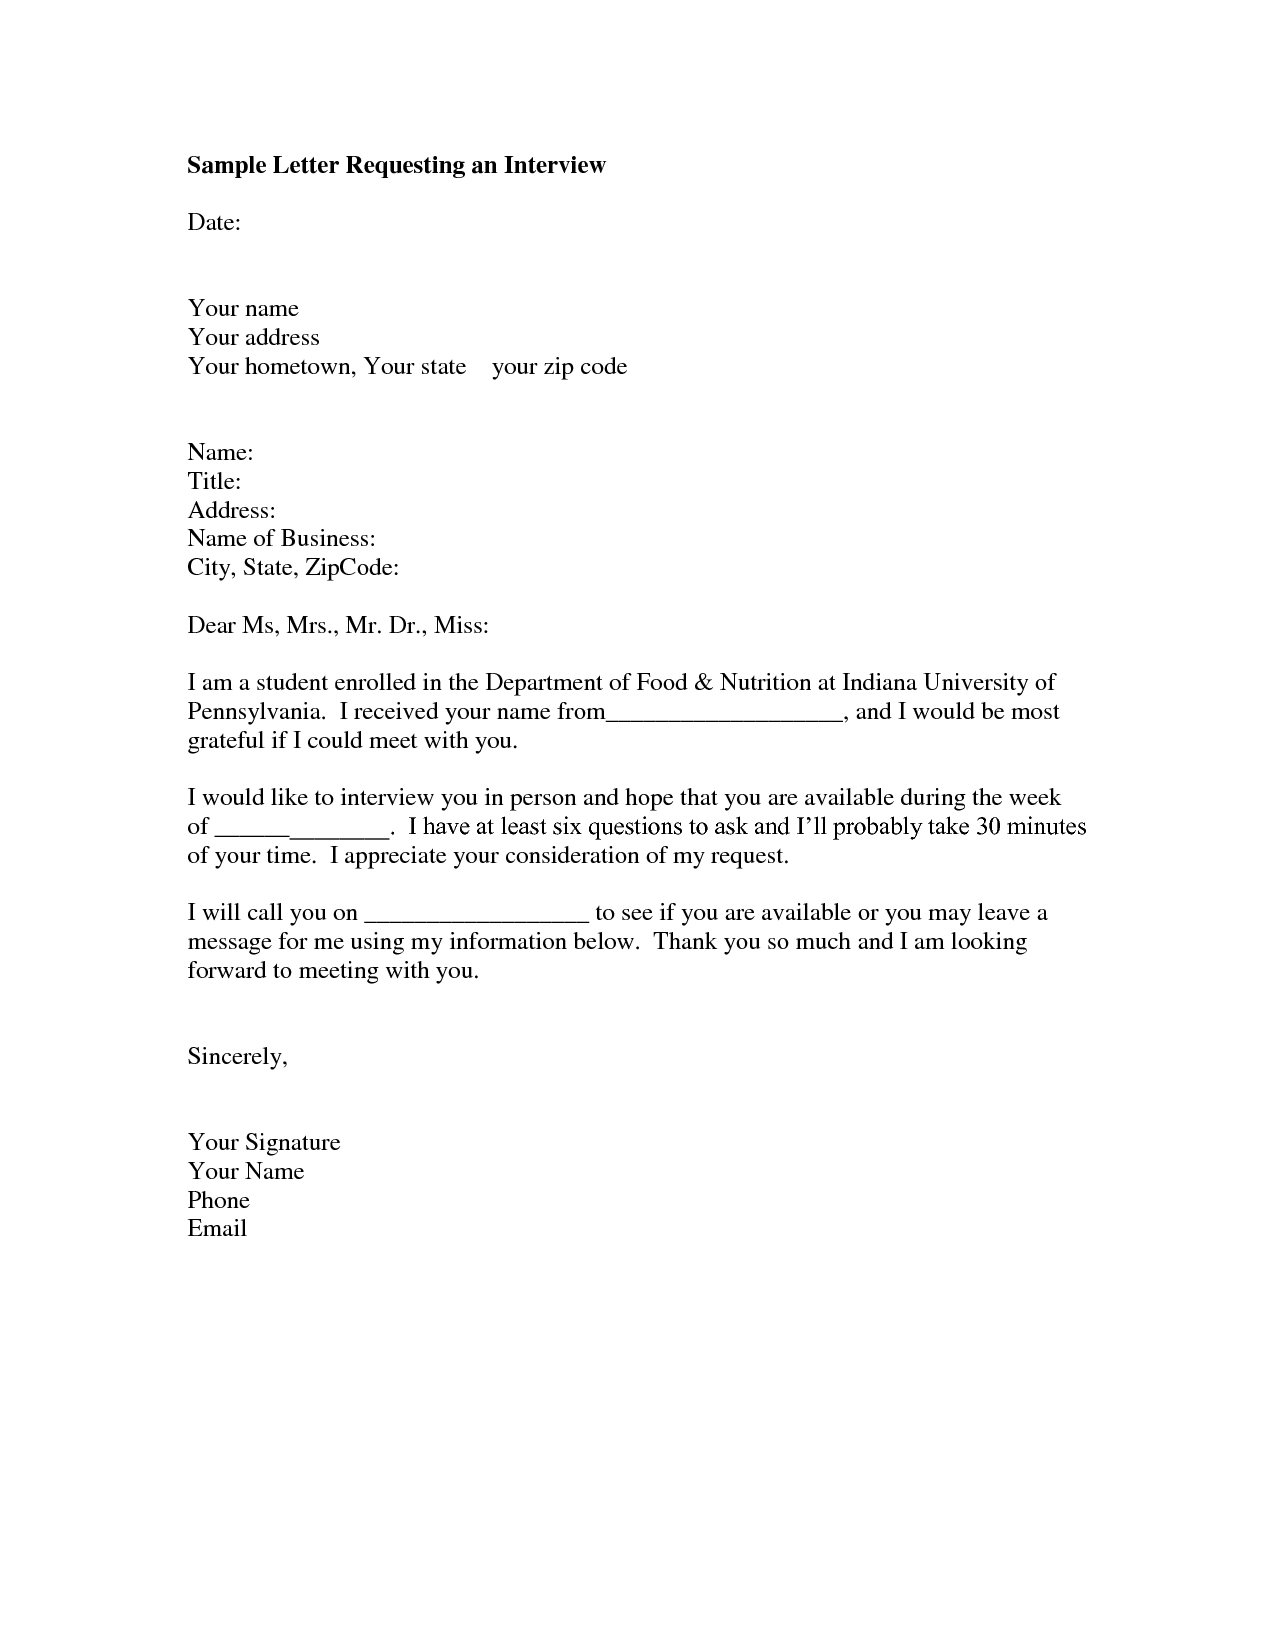 Interview request letter sample format of a letter you for Covering letter for job interview